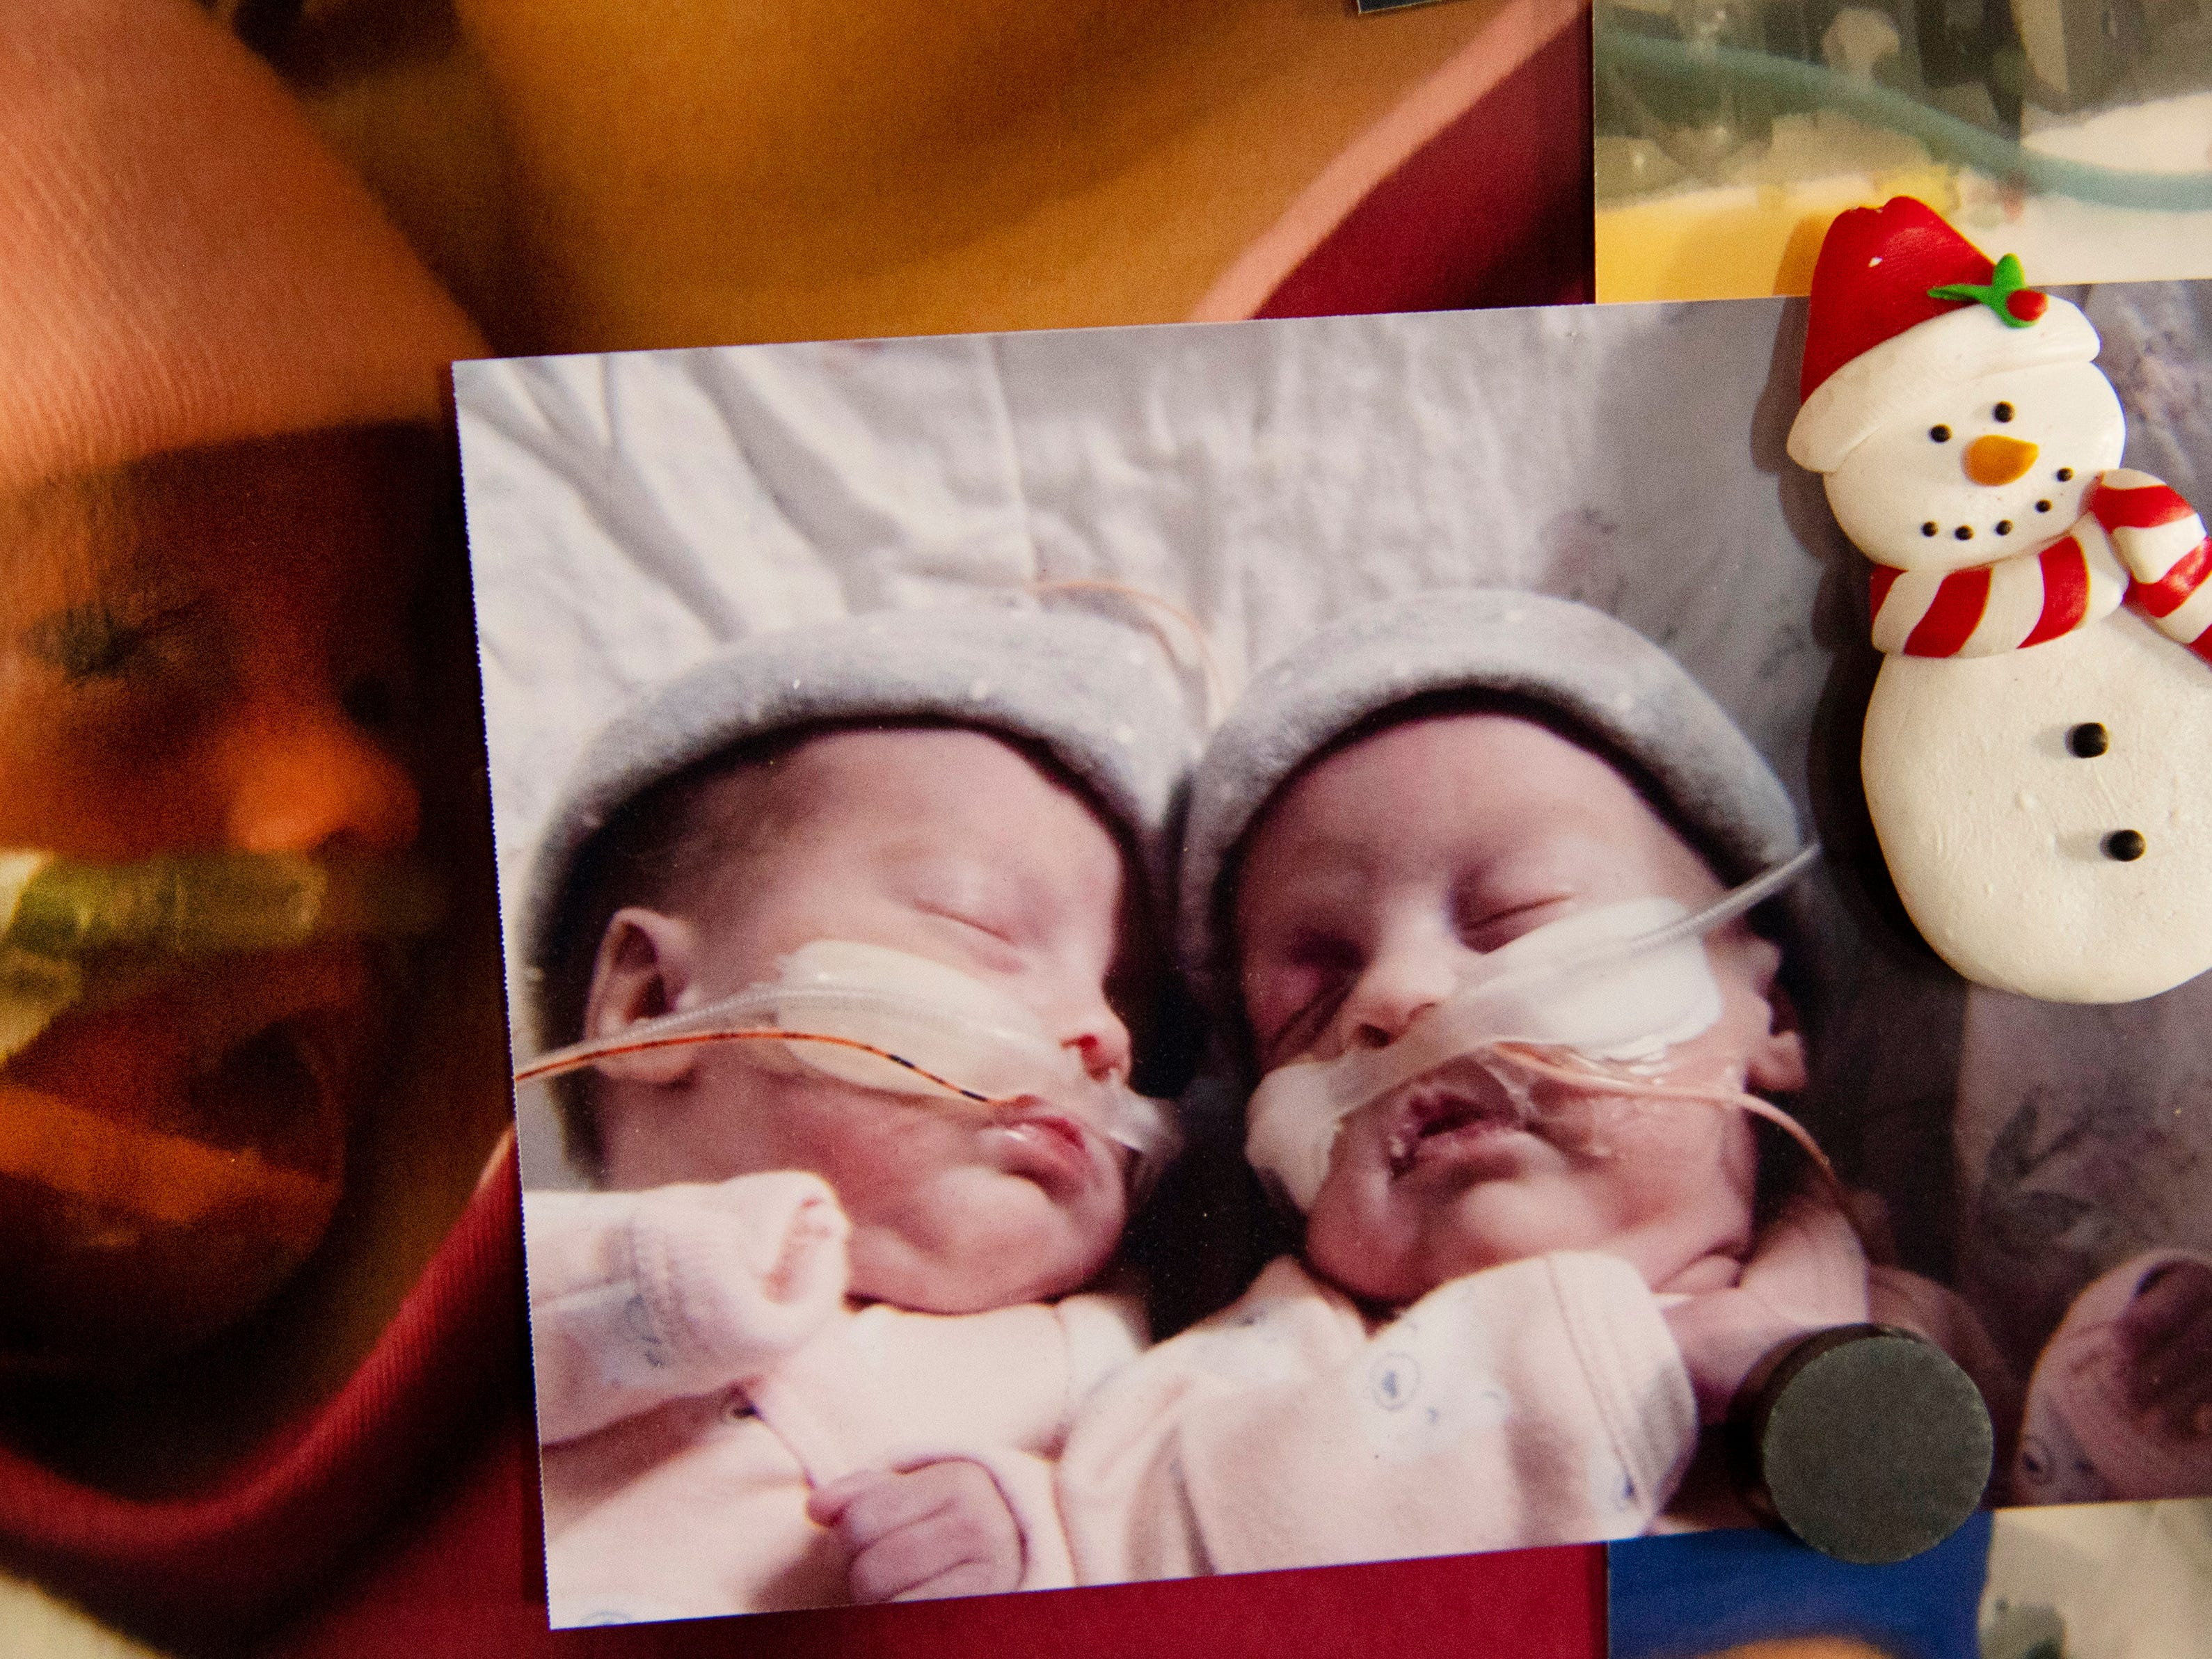 The refrigerator in the Harper's home has pictures of the preemie twins, Violet and Indigo, at different stages of their young lives. After spending nearly six months together sharing the same amniotic sac and placenta, the two have been living in separate incubators for the first 113 days of their lives.